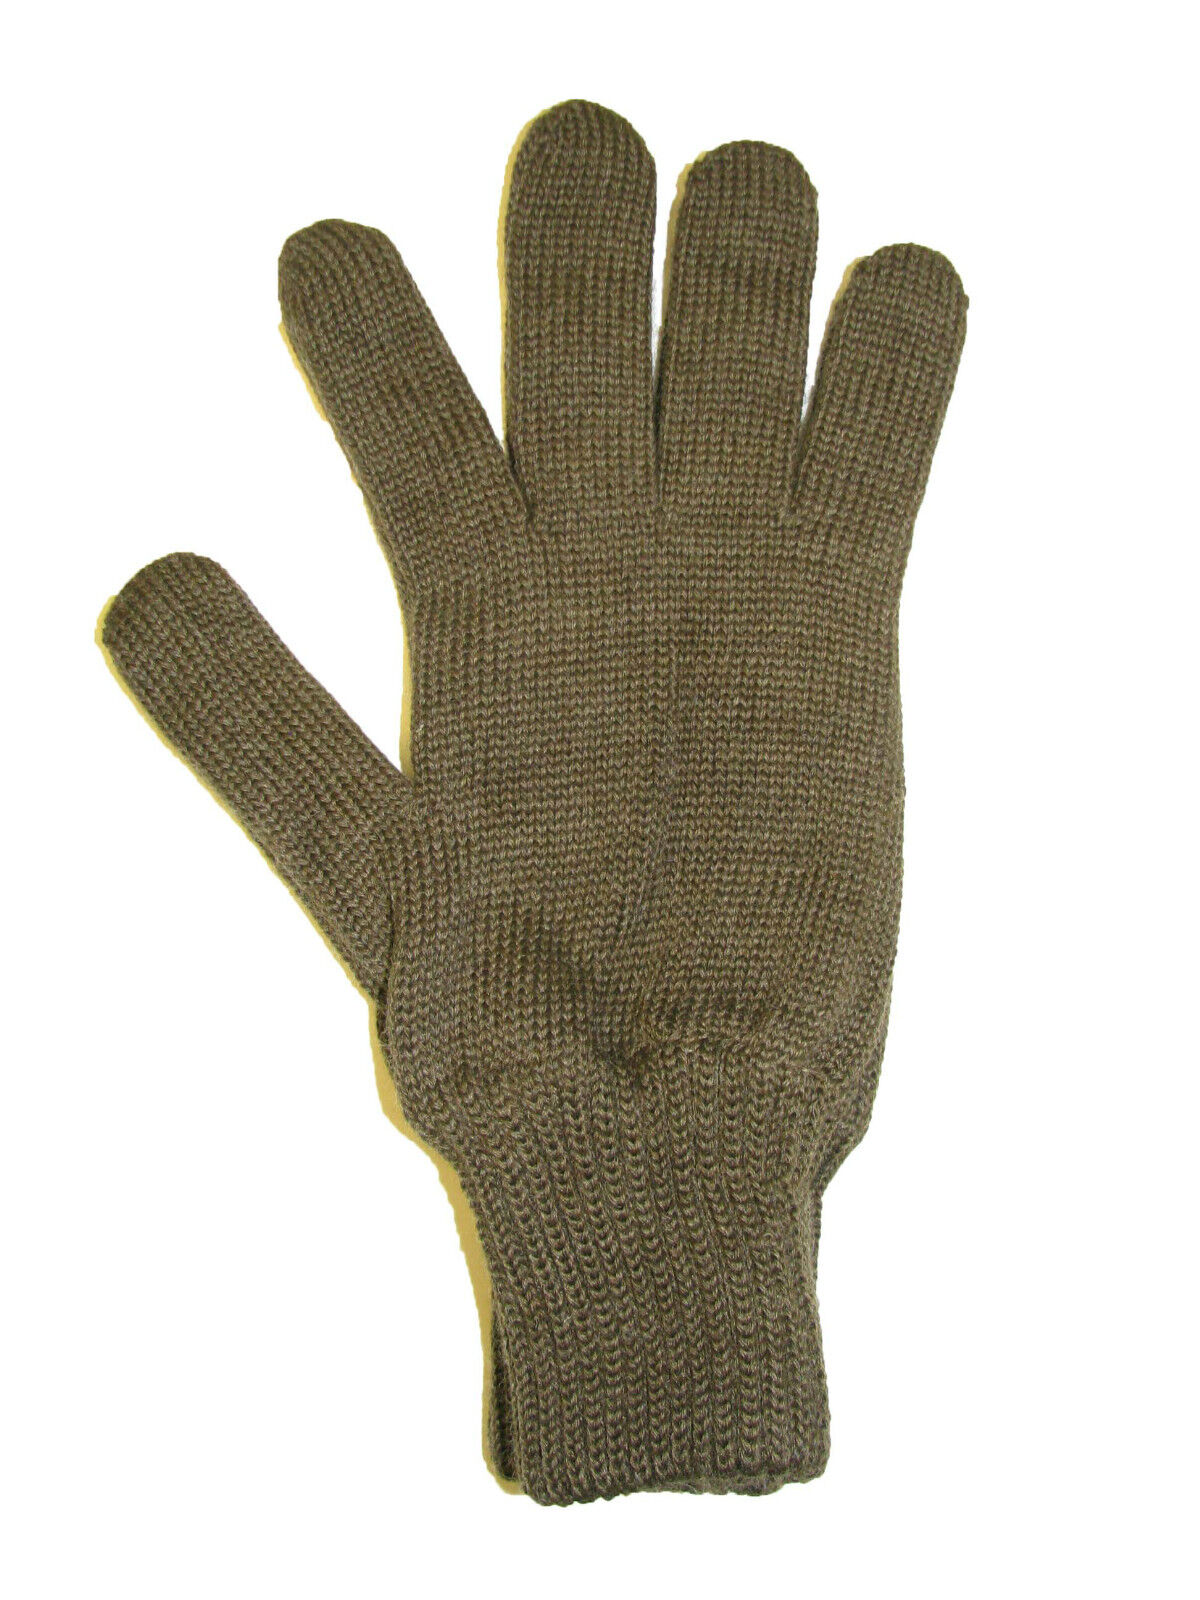 Genuine CZECH Army Issue Combat Winter Knitted Wool Gloves